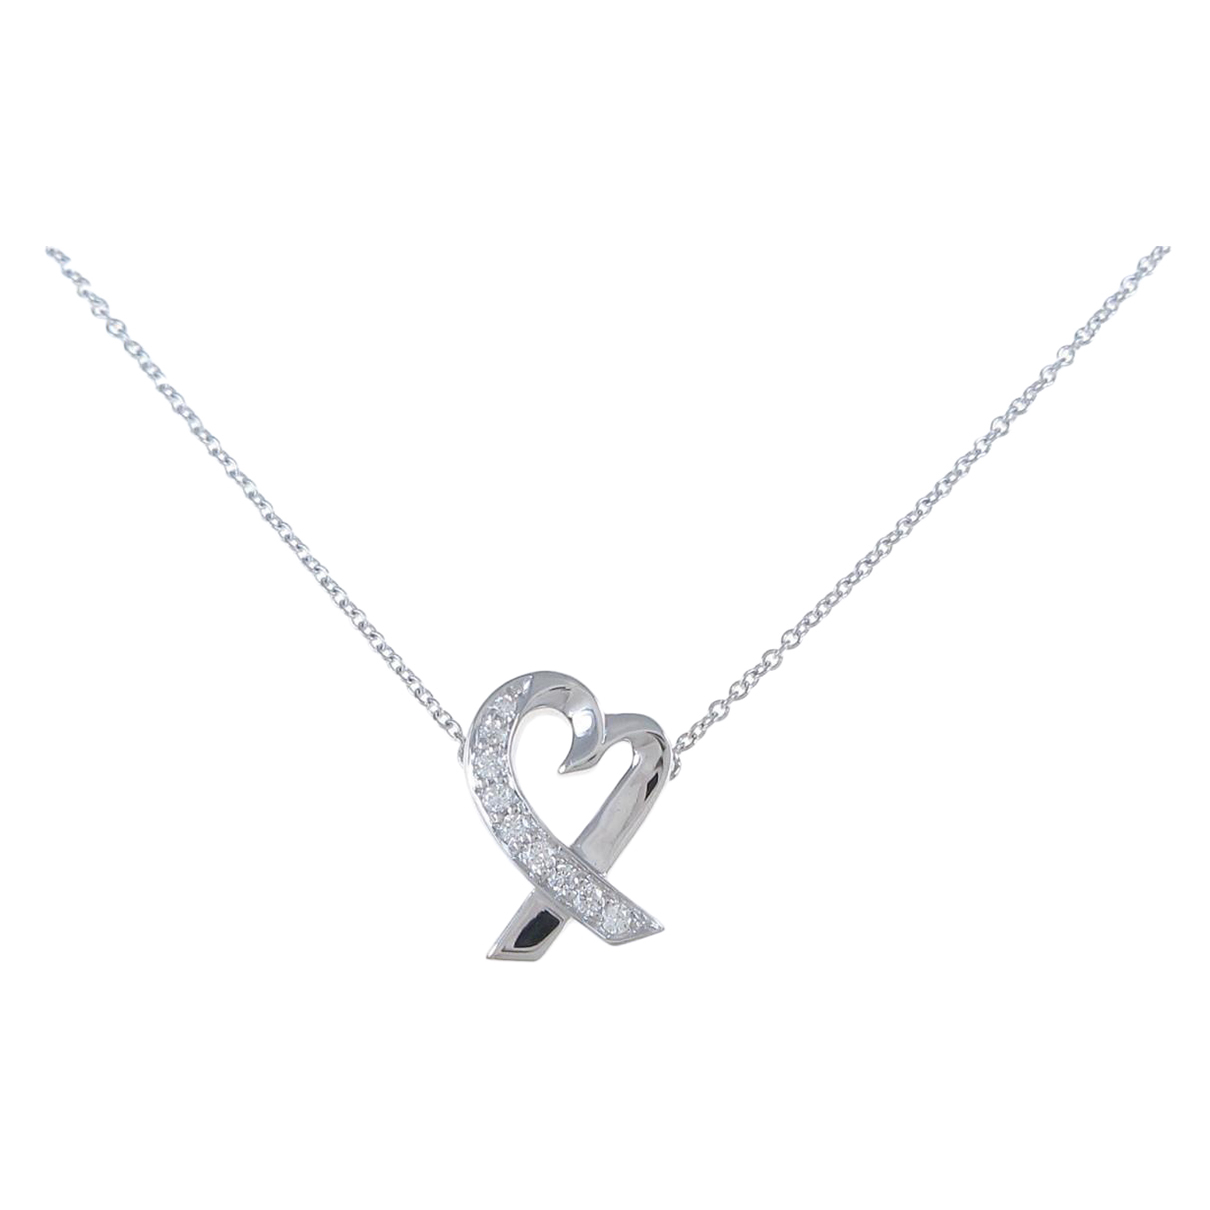 Tiffany & Co Paloma Picasso Kette in  Silber Weissgold